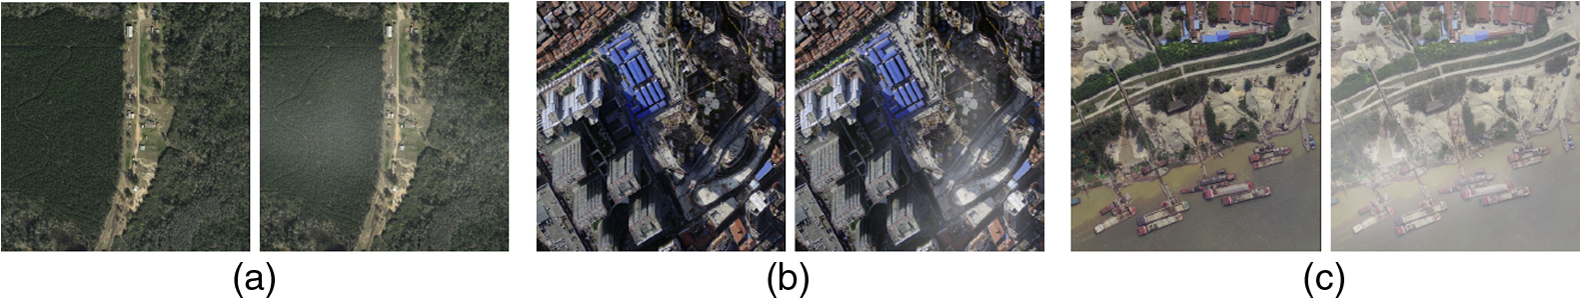 Haze removal from a single remote sensing image based on a fully